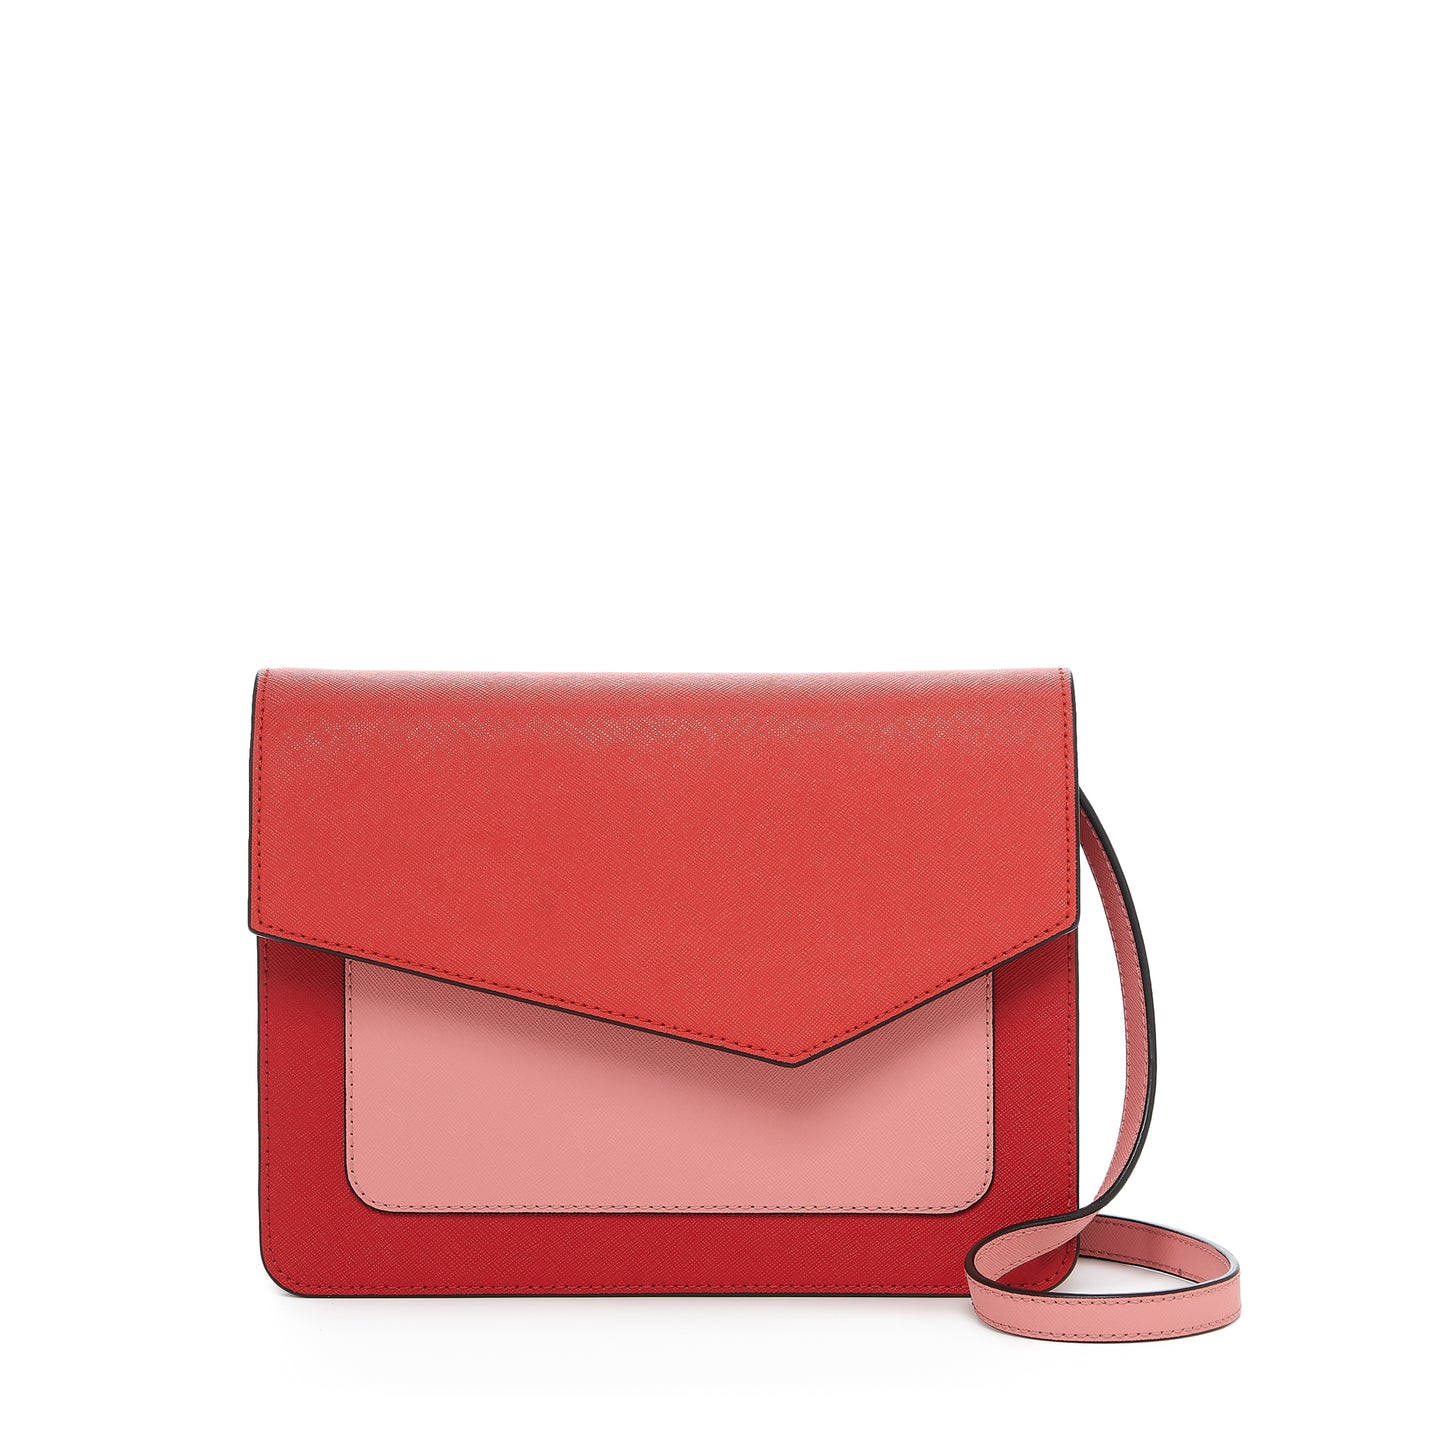 botkier cobble hill square crossbody in pepper red combo